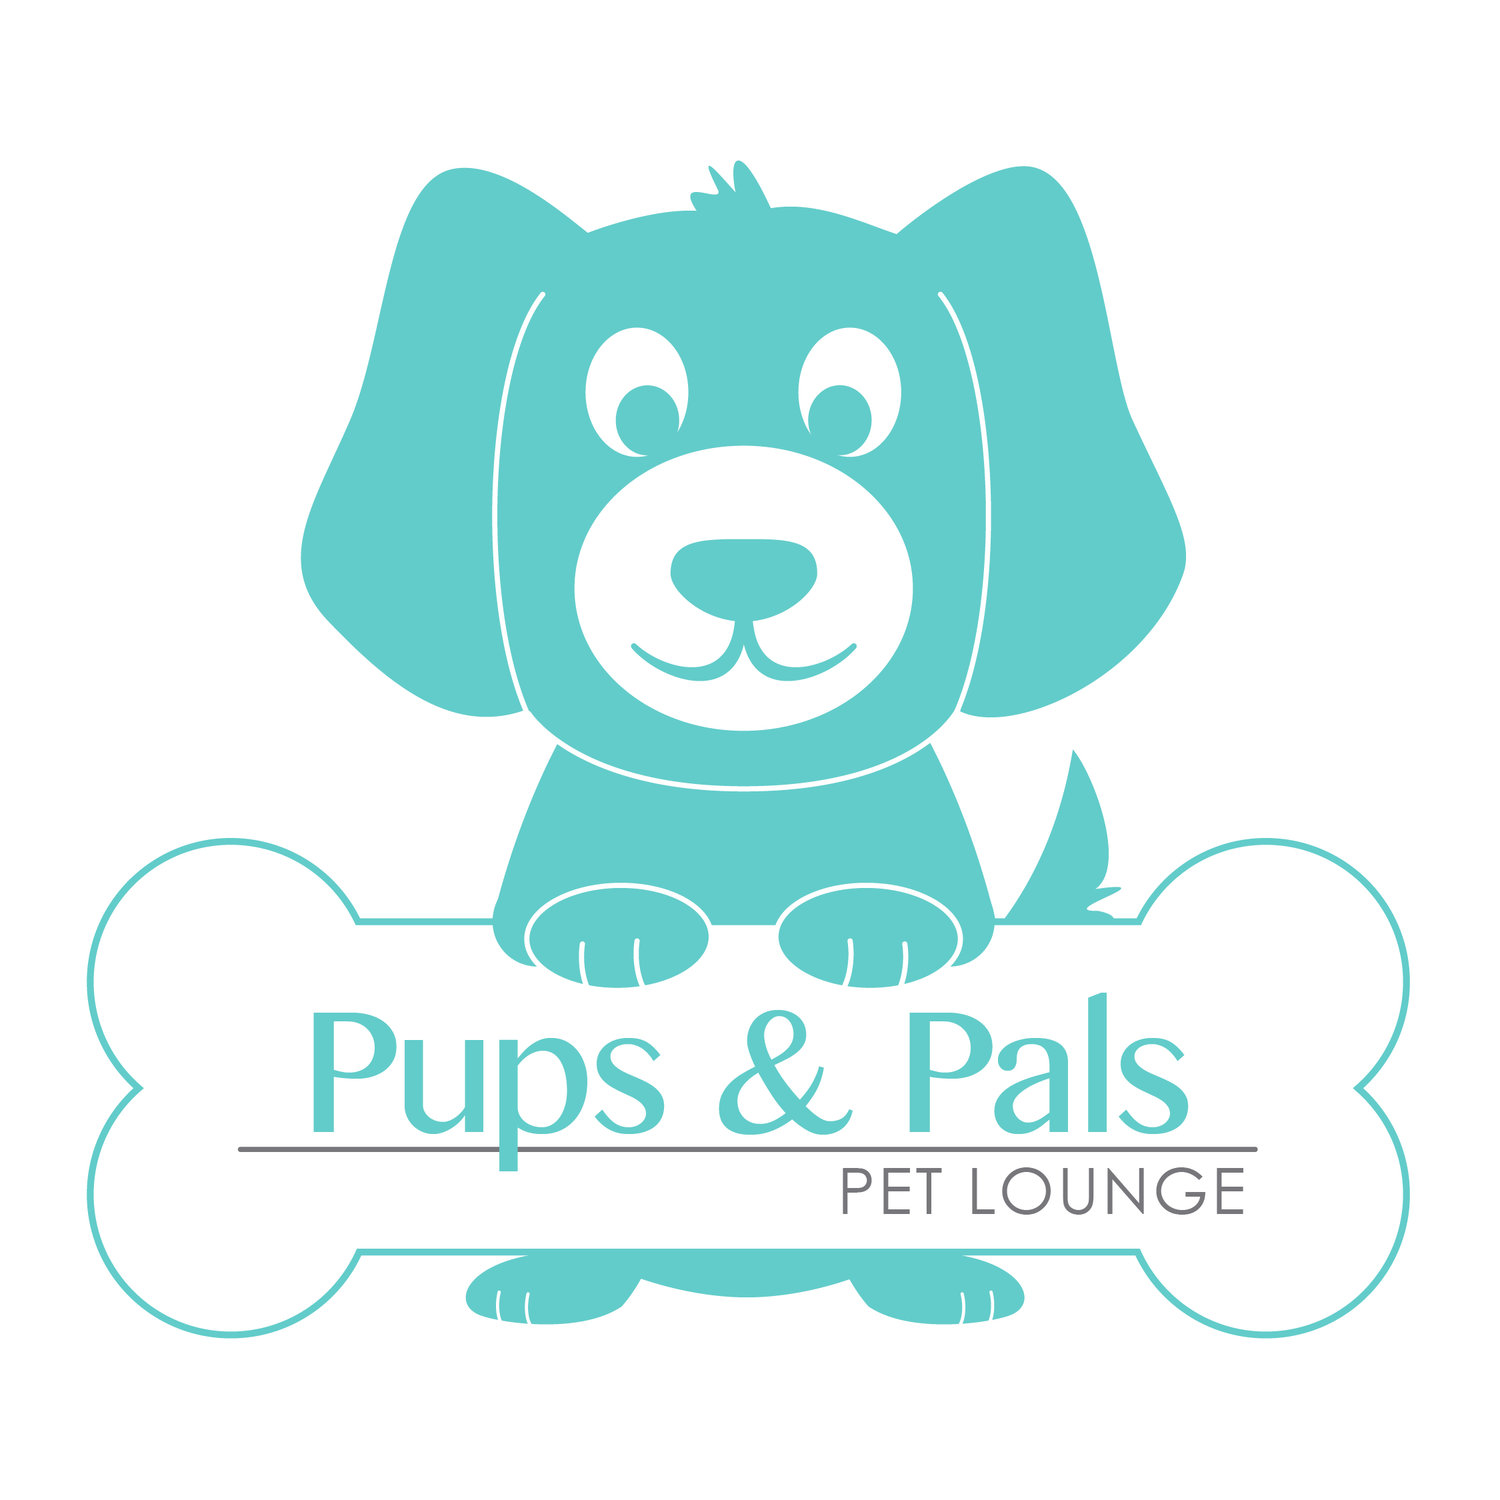 Pups & Pals Pet Lounge